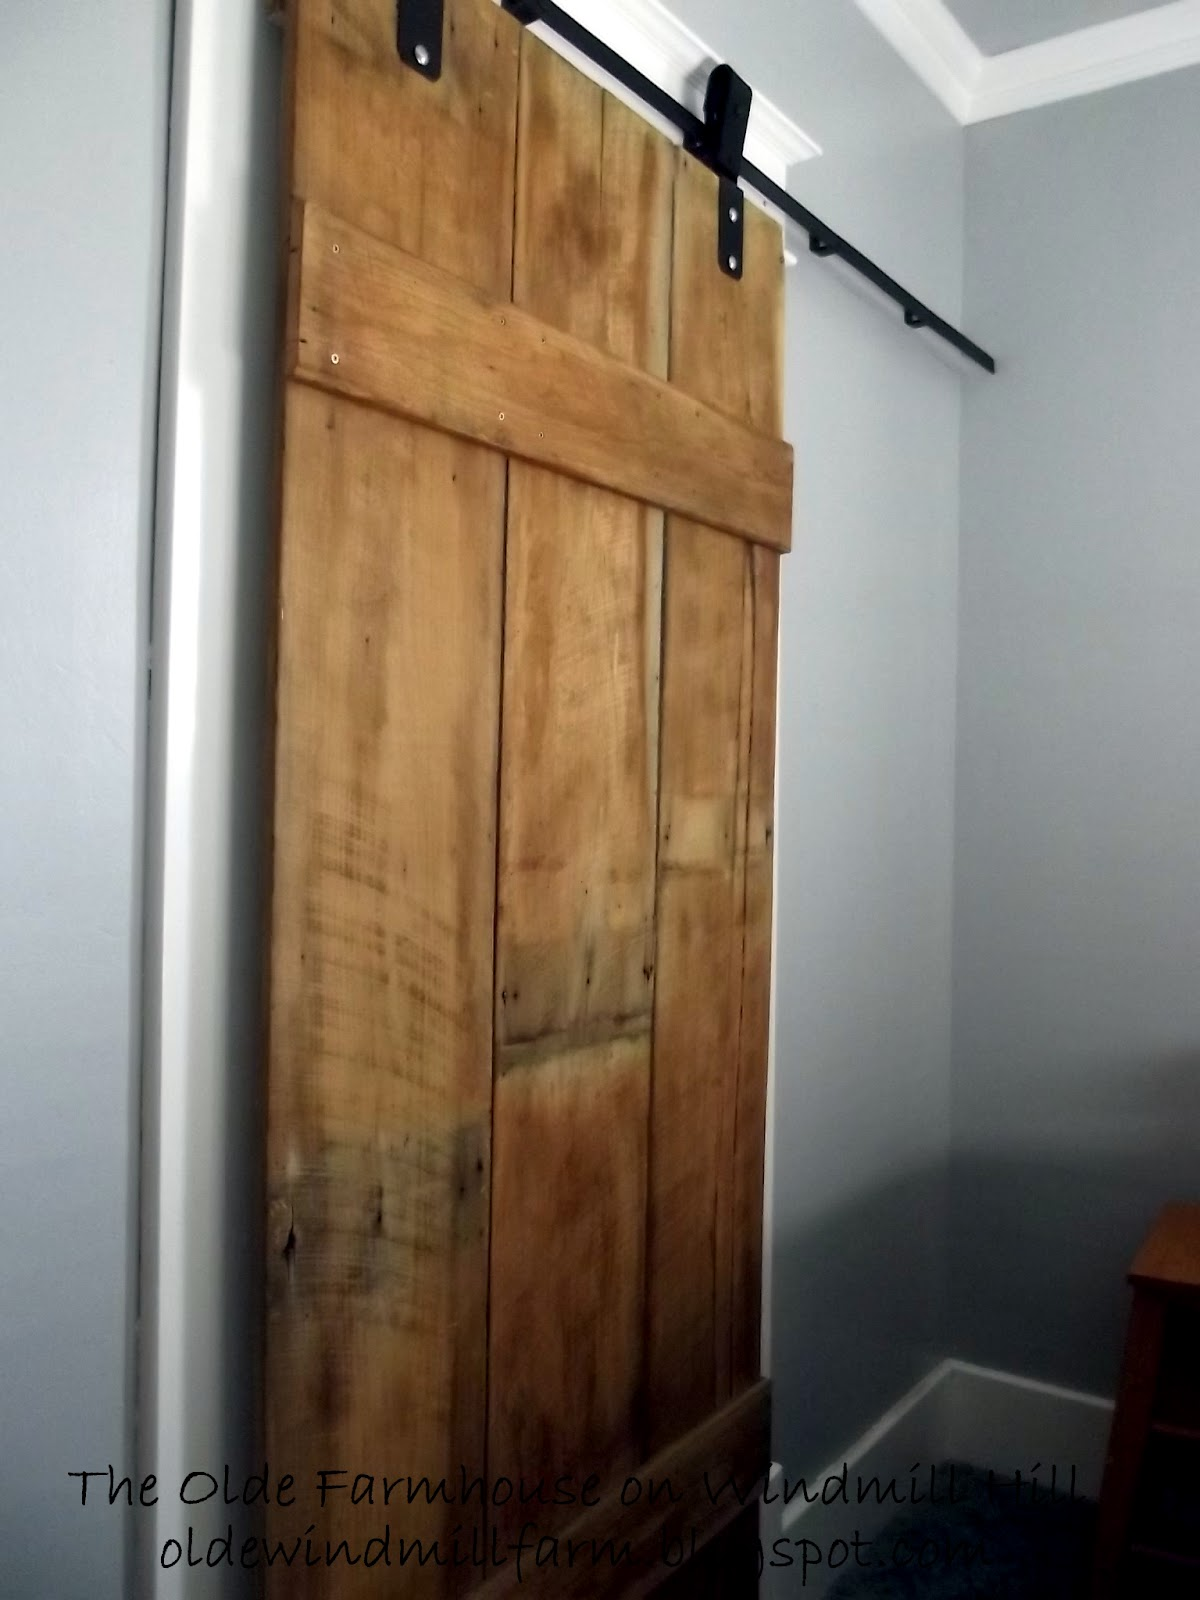 The olde farmhouse on windmill hill diy barn door details for Small closet barn door